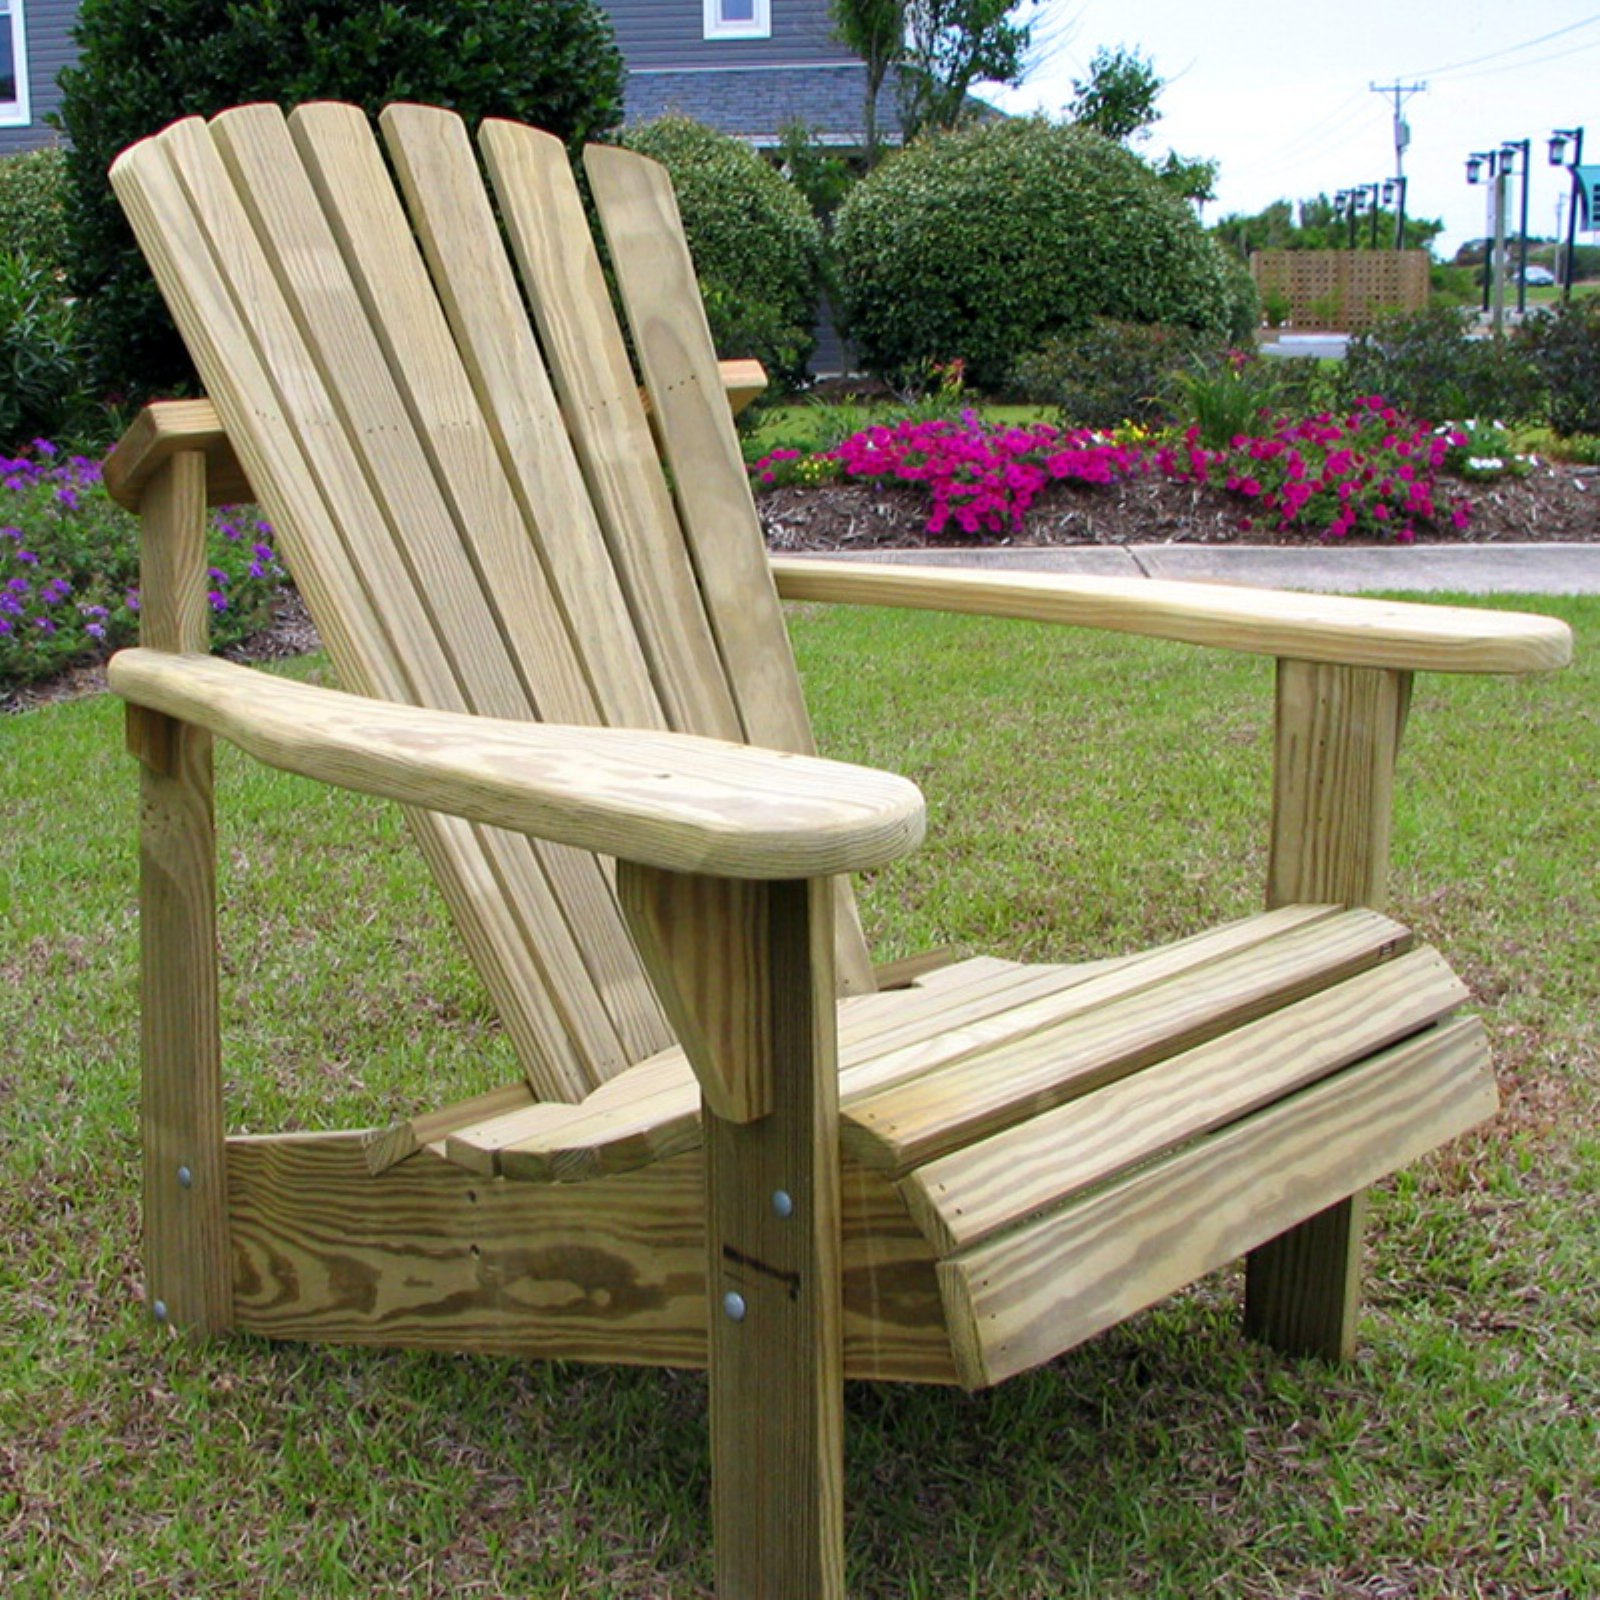 Weathercraft Designers Choice Pine Adirondack Chair - Natural